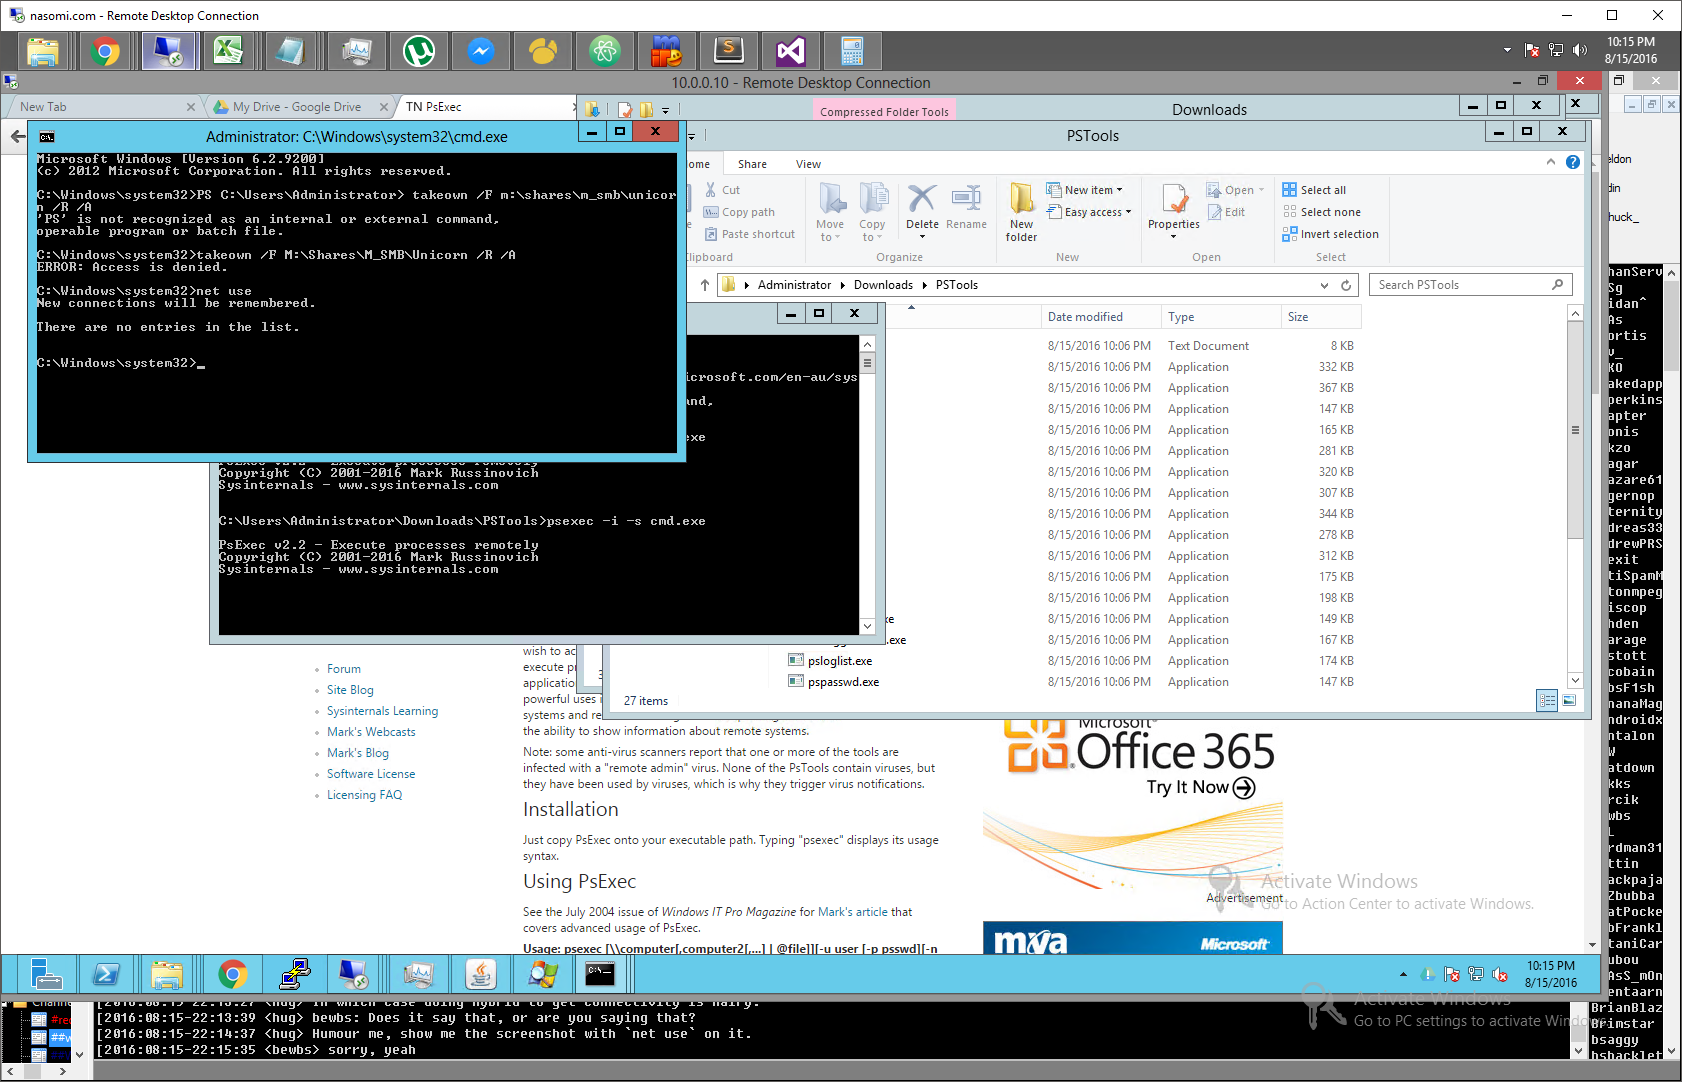 windows-server IRC Archive for 2016-08-15